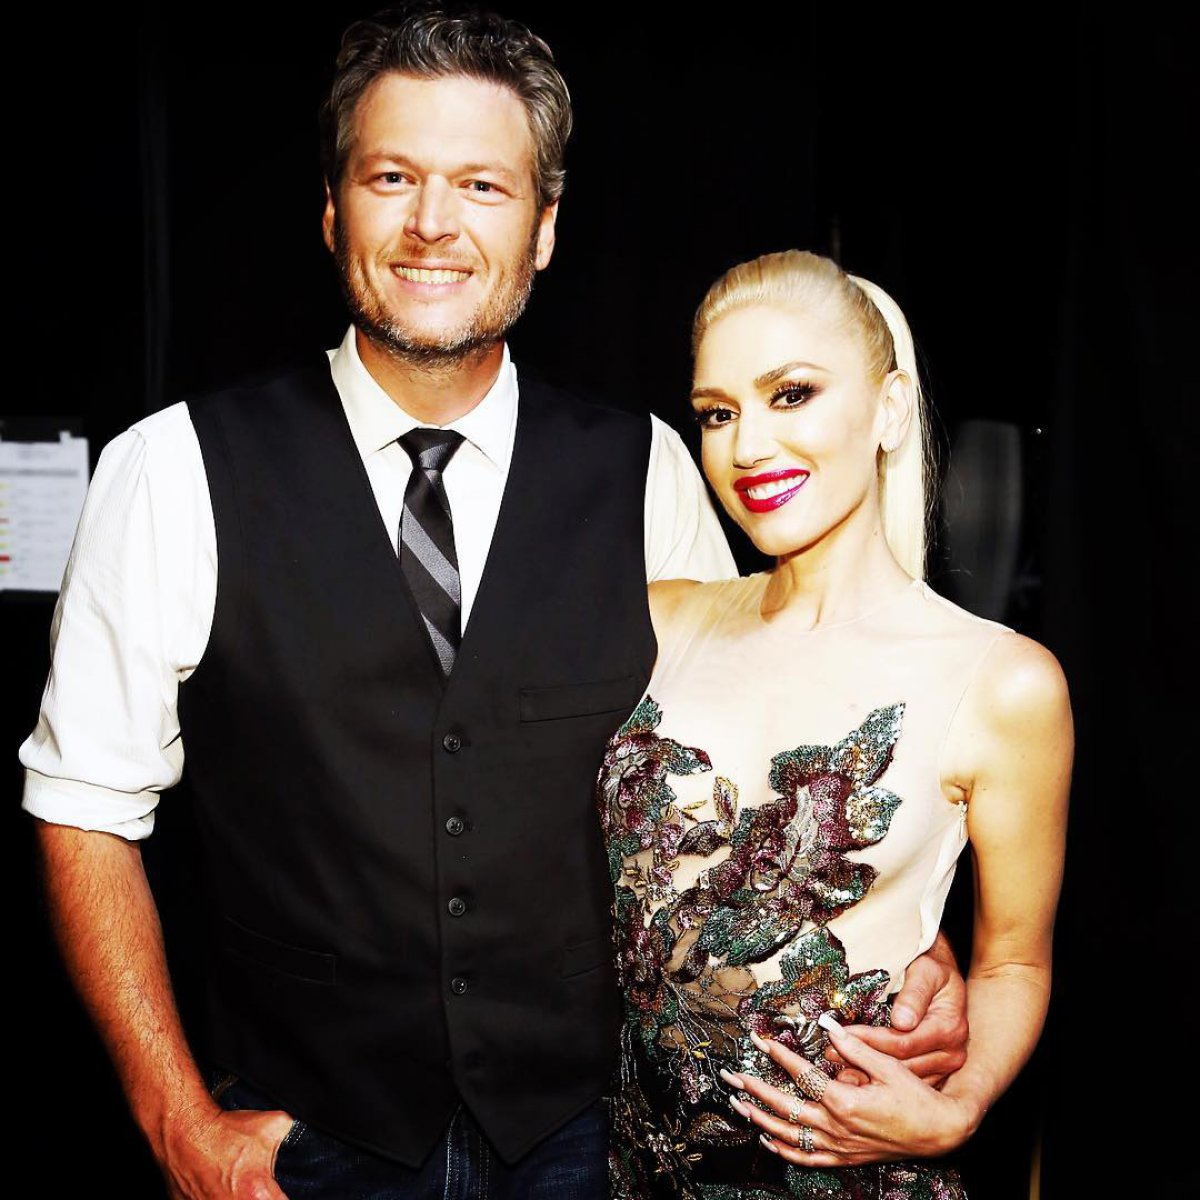 Gwen stefani denies dating blake shelton